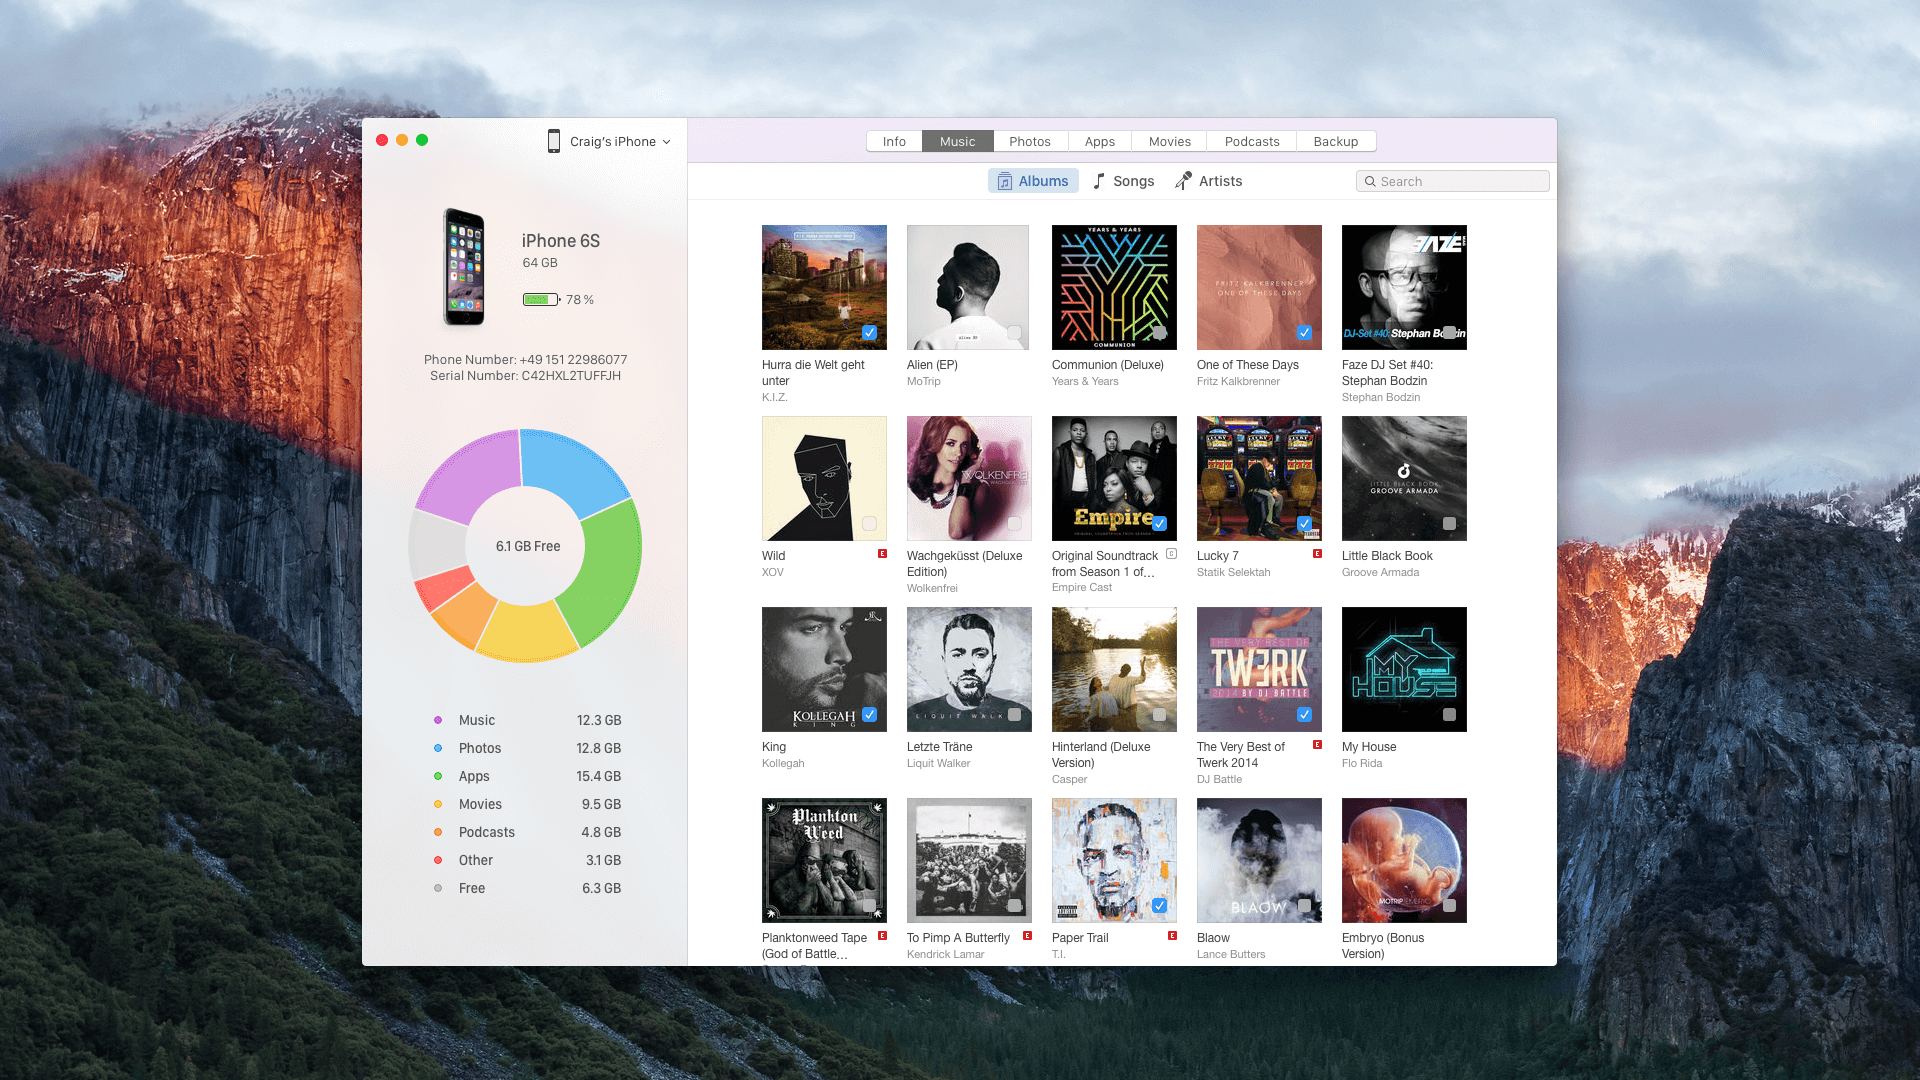 Would iTunes look better like this?